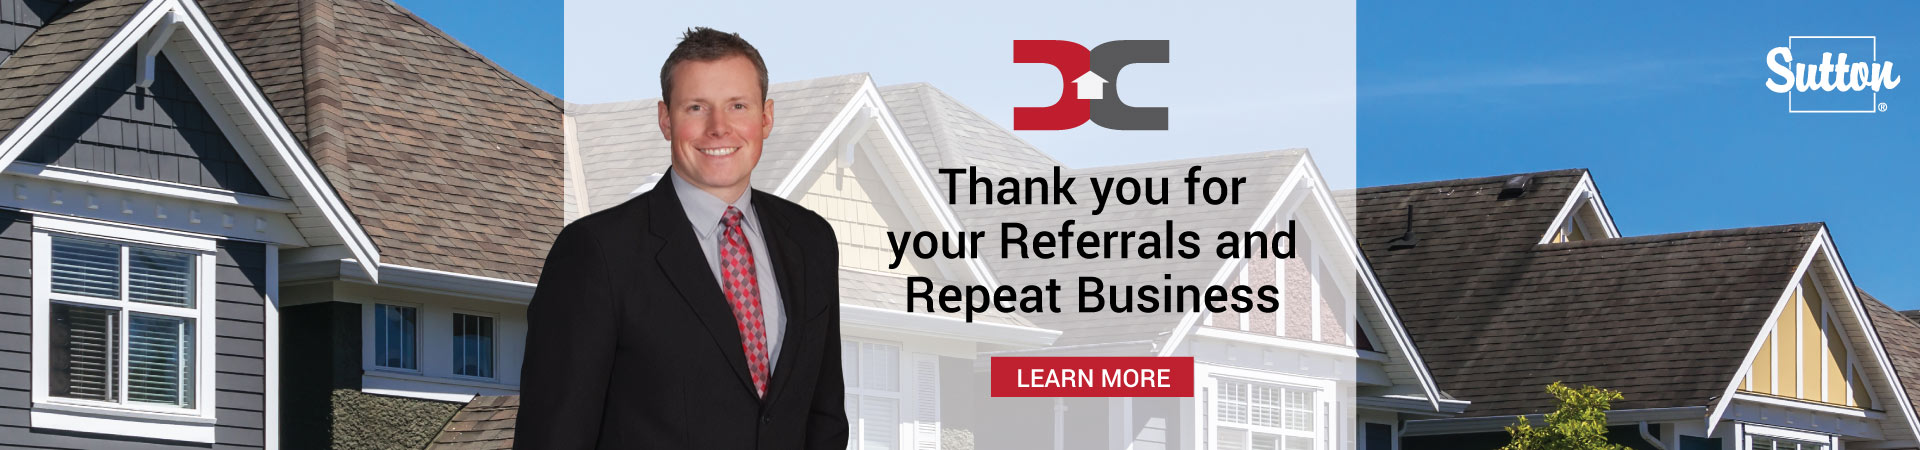 Daniel Cram - Realtor - Thanks for Your Referrals and Repeat Business